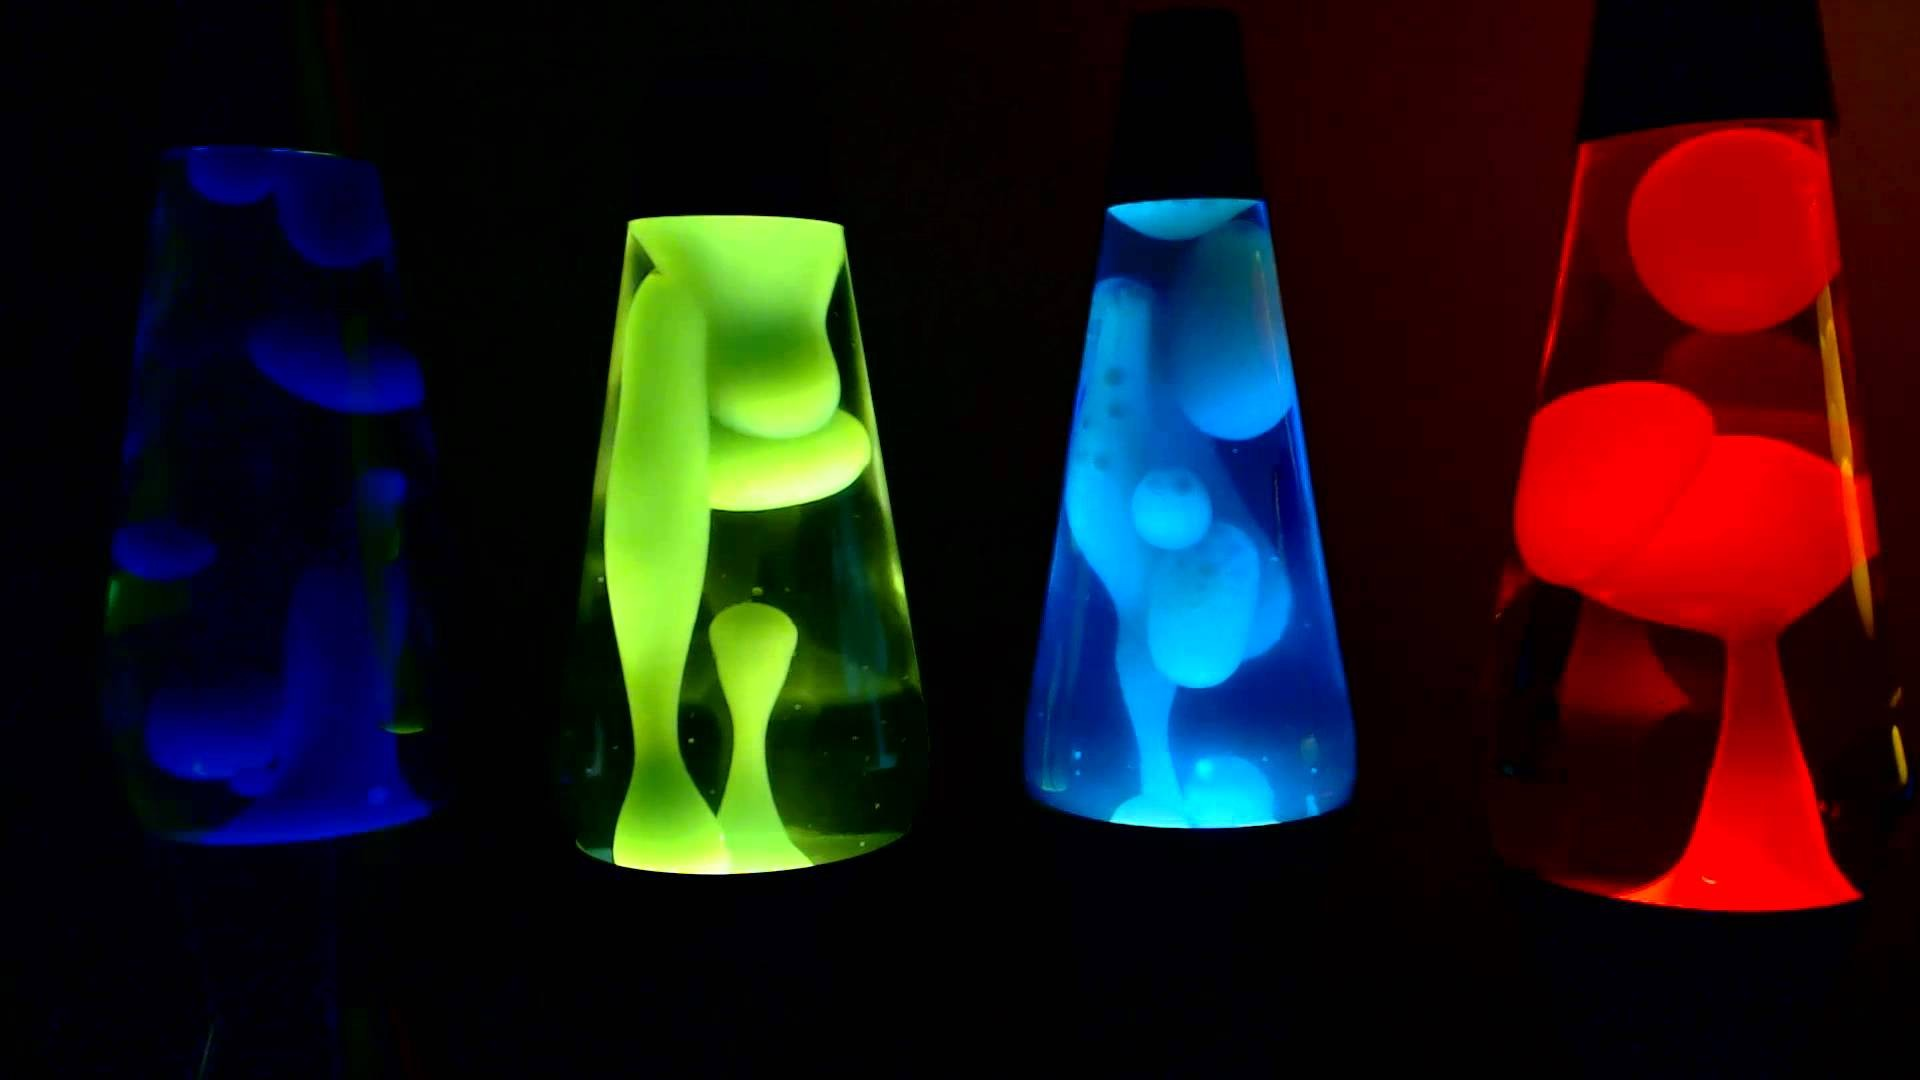 Tom And Jerry 3d Wallpaper Download Lava Lamp Wallpaper Gallery